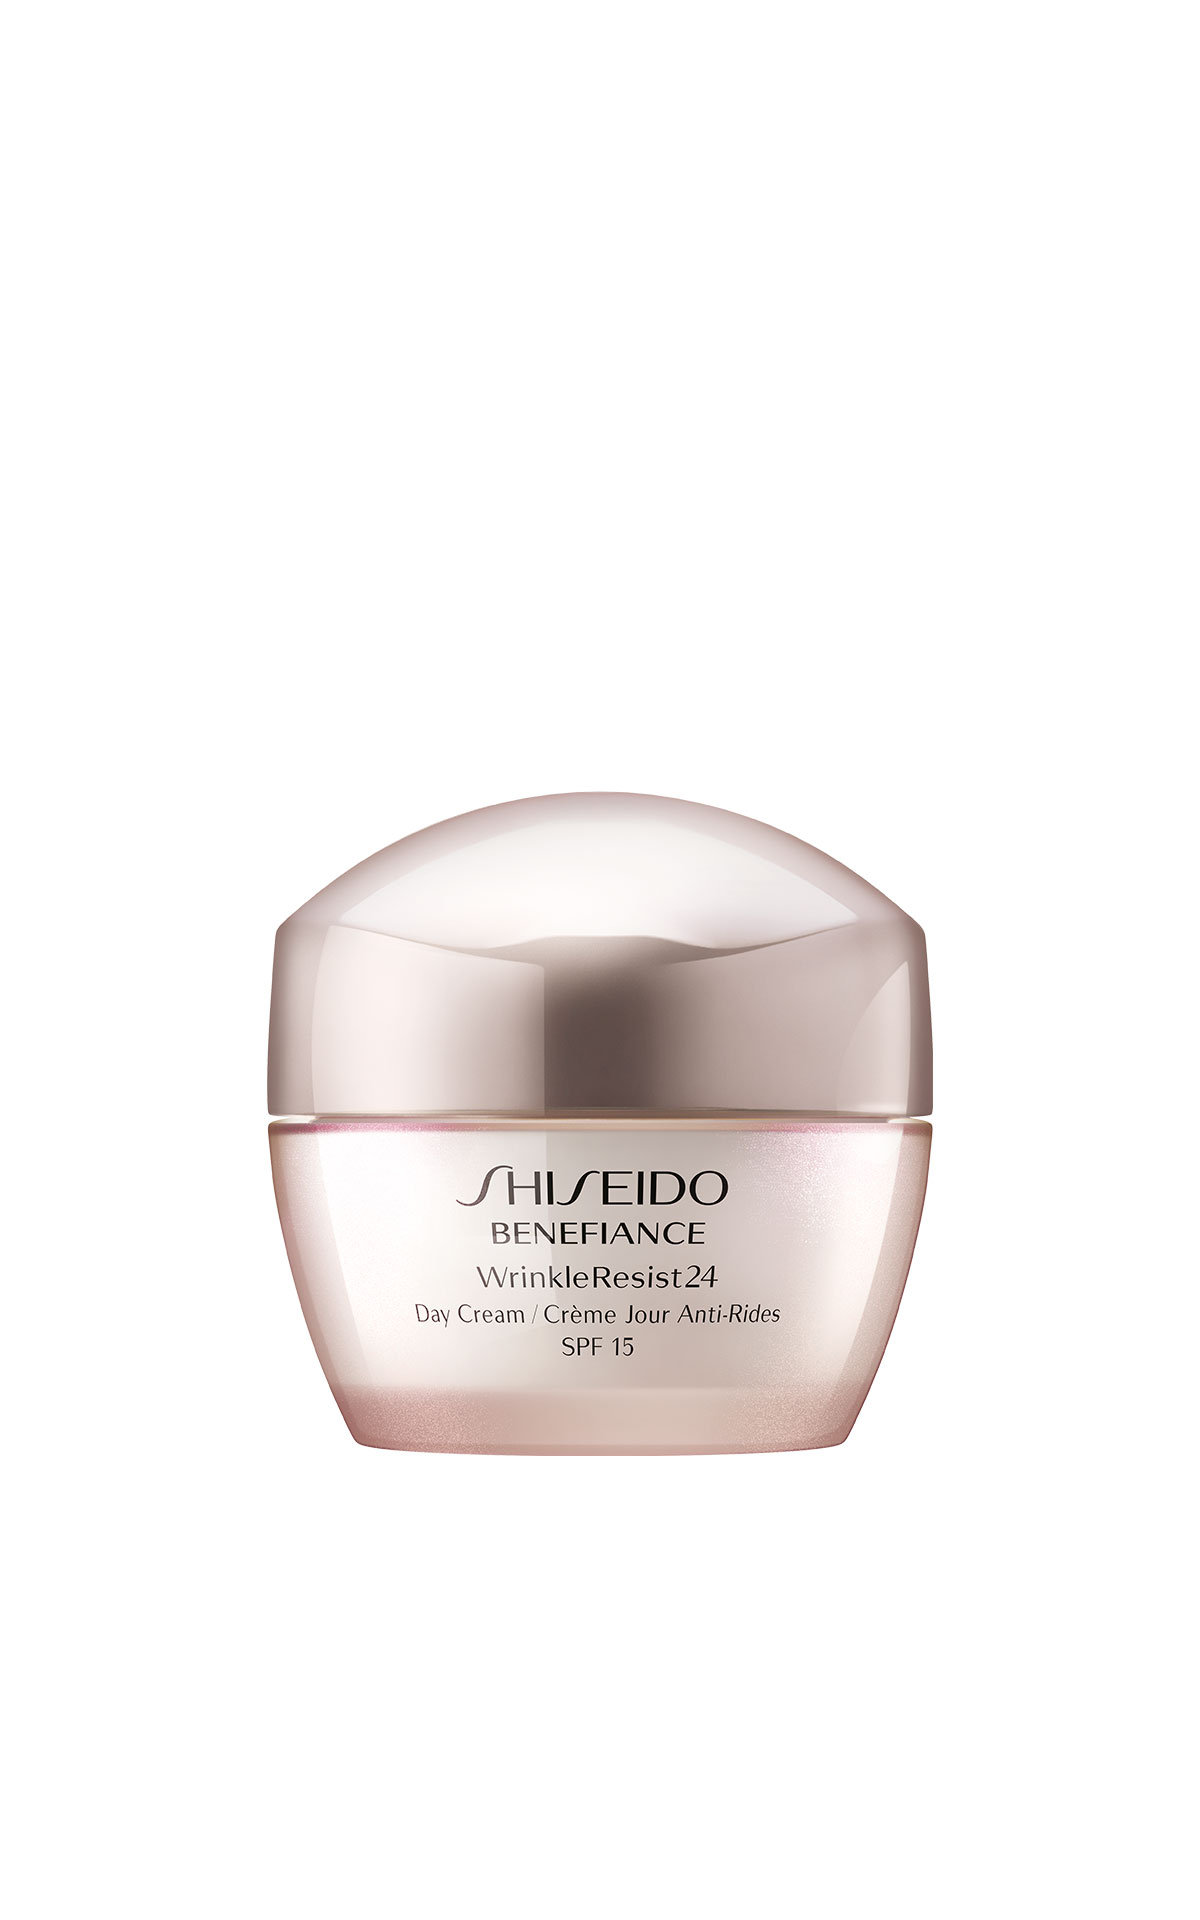 Beauté Prestige International Shiseido Benefiance wrinkle resist 24 day cream from Bicester Village